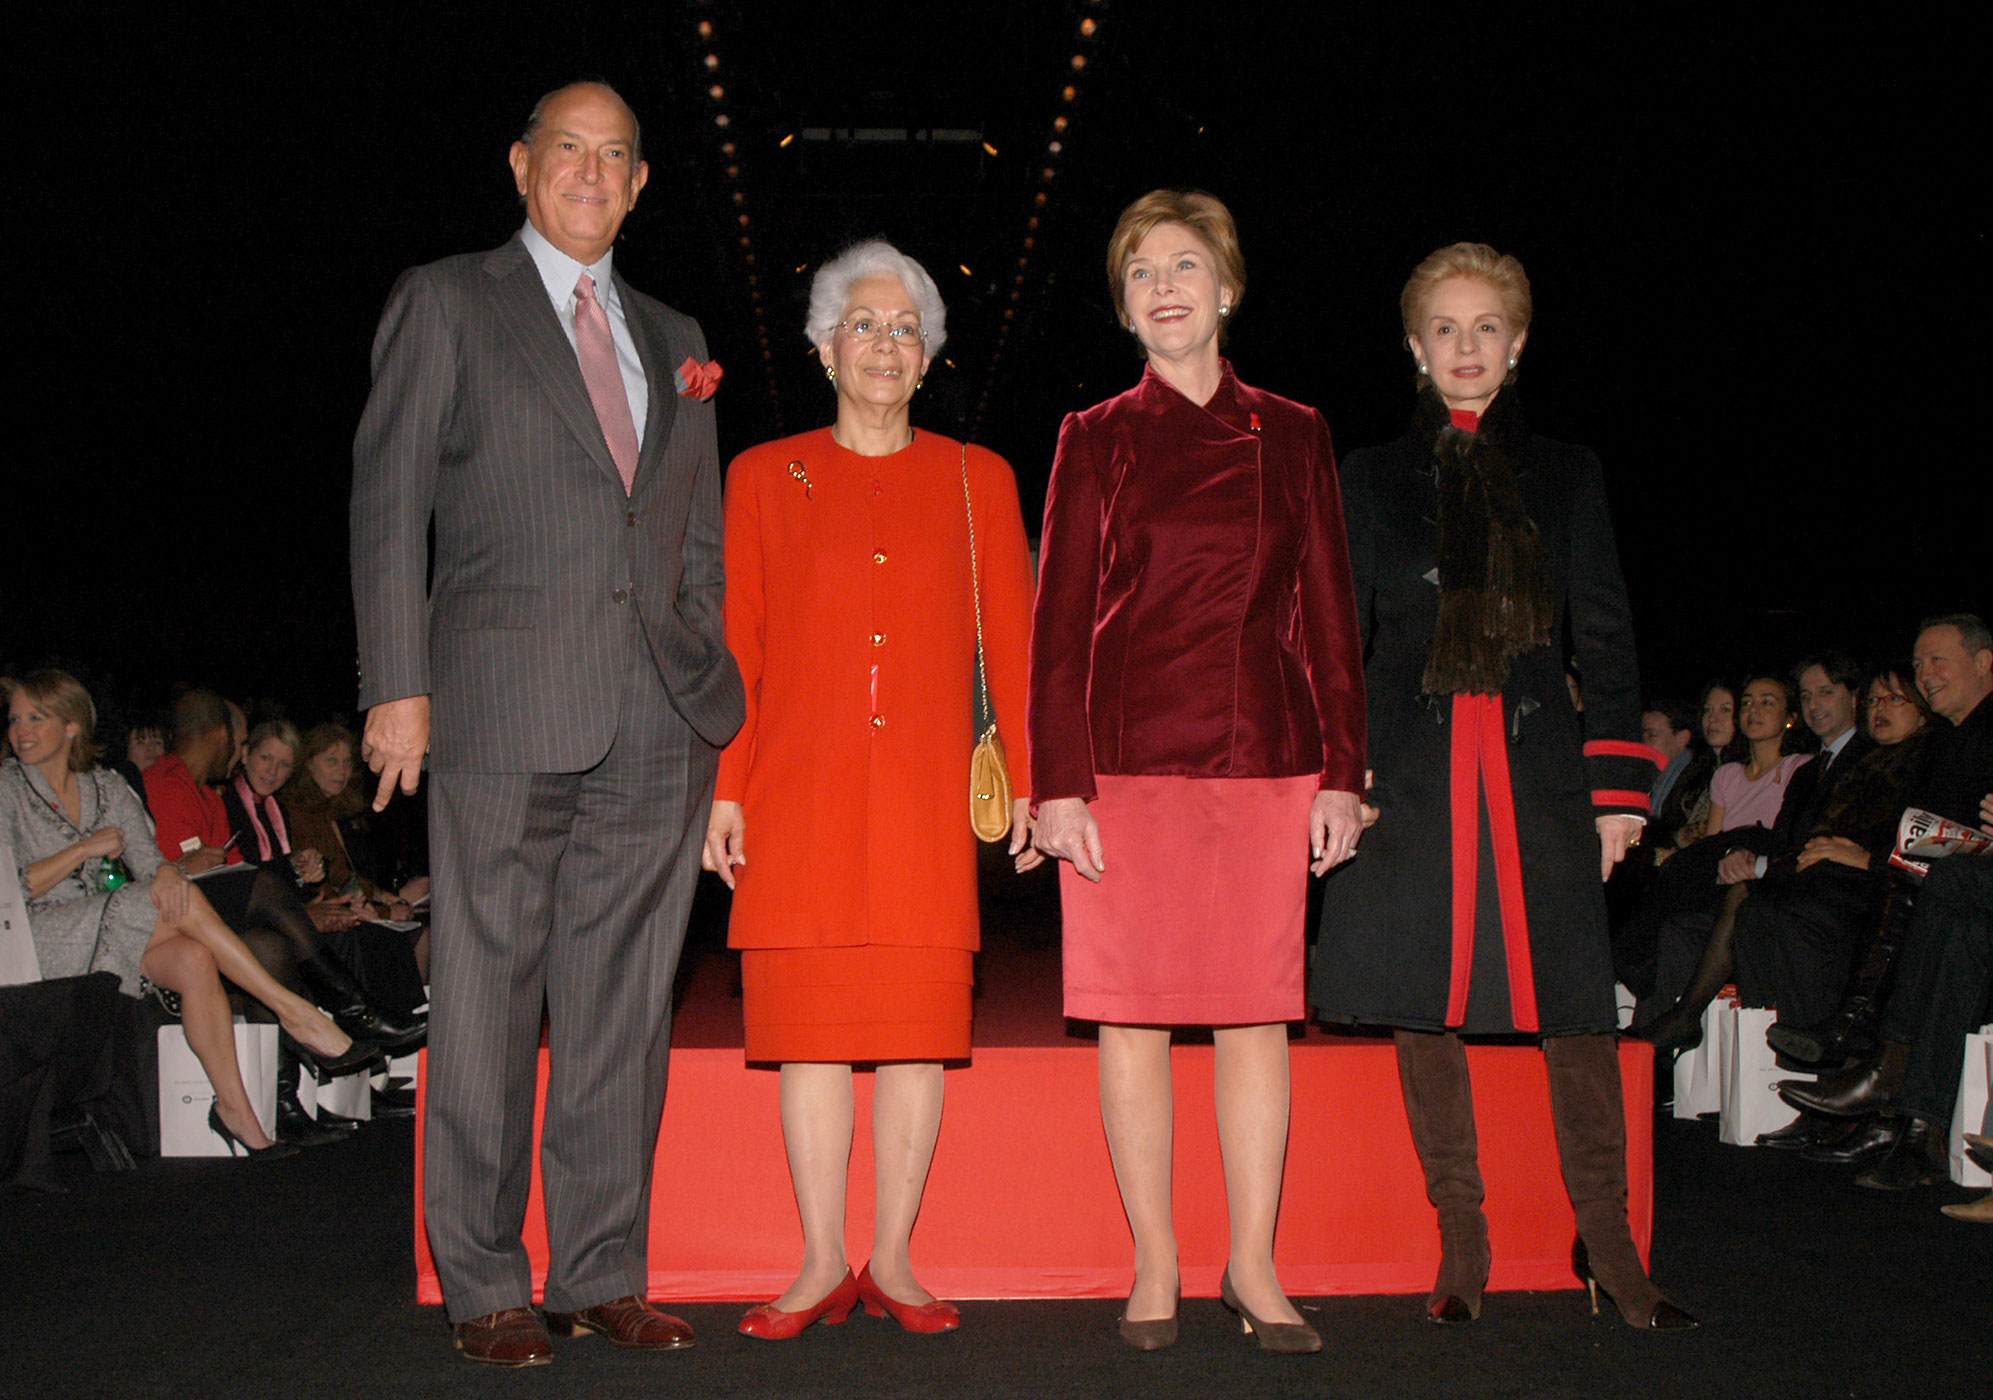 Oscar De La Renta with Elizabeth Nabel, First Lady Laura Bush, and Carolina Herrera at the Heart Truth Red Dress Collection fashion show.